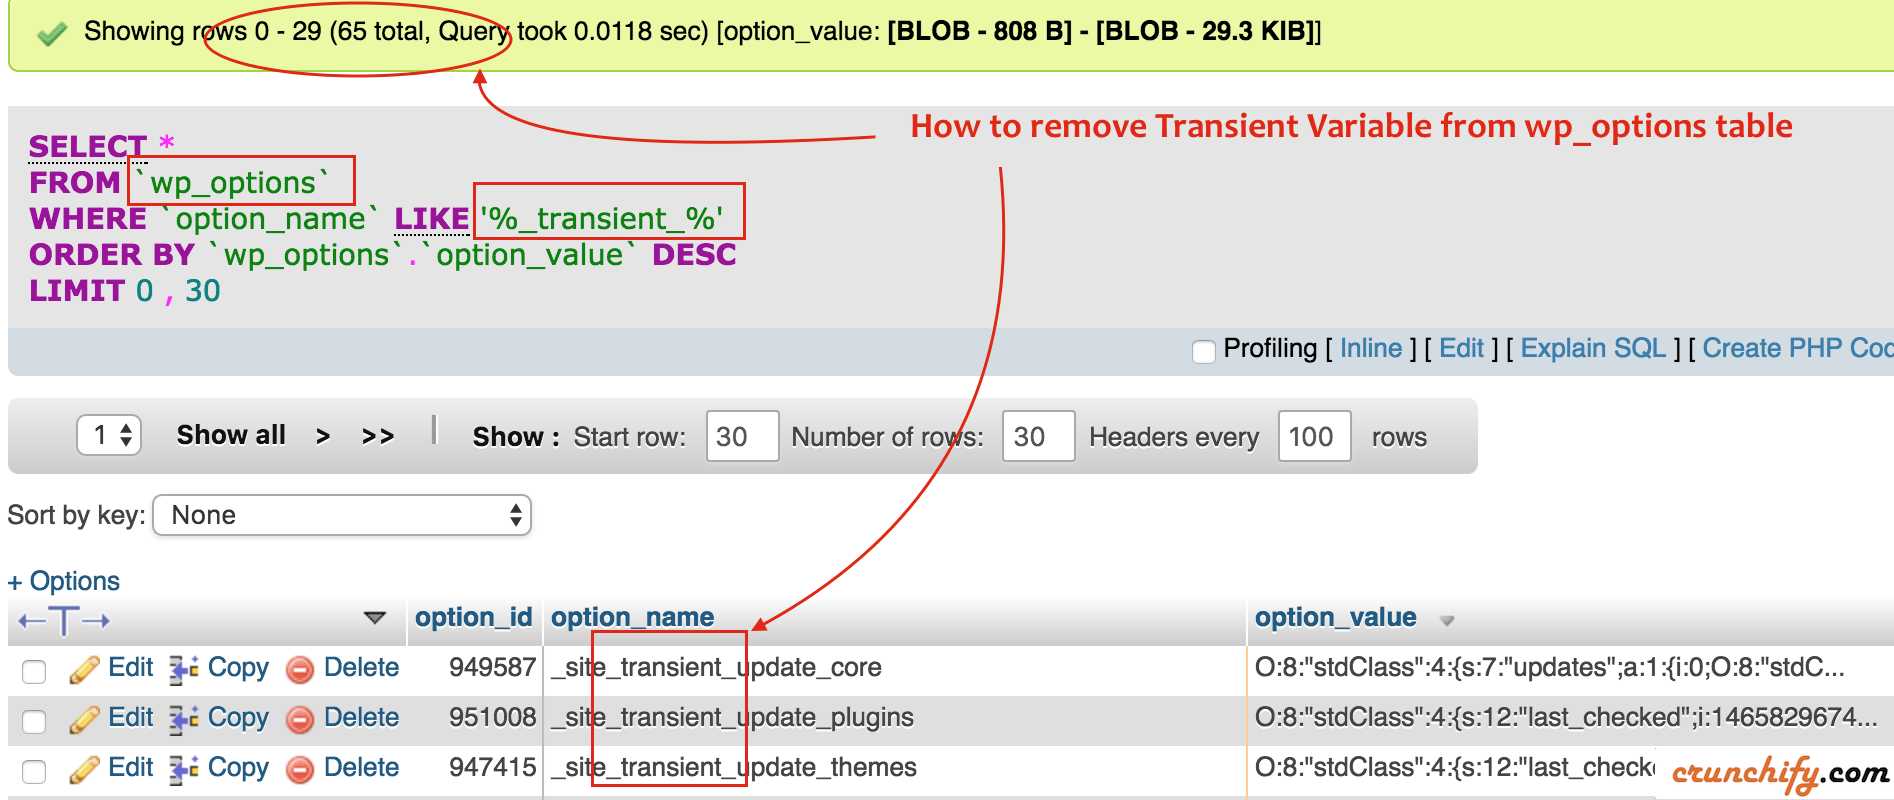 How to remove Transient Variable from wp_options table - Crunchify Tips